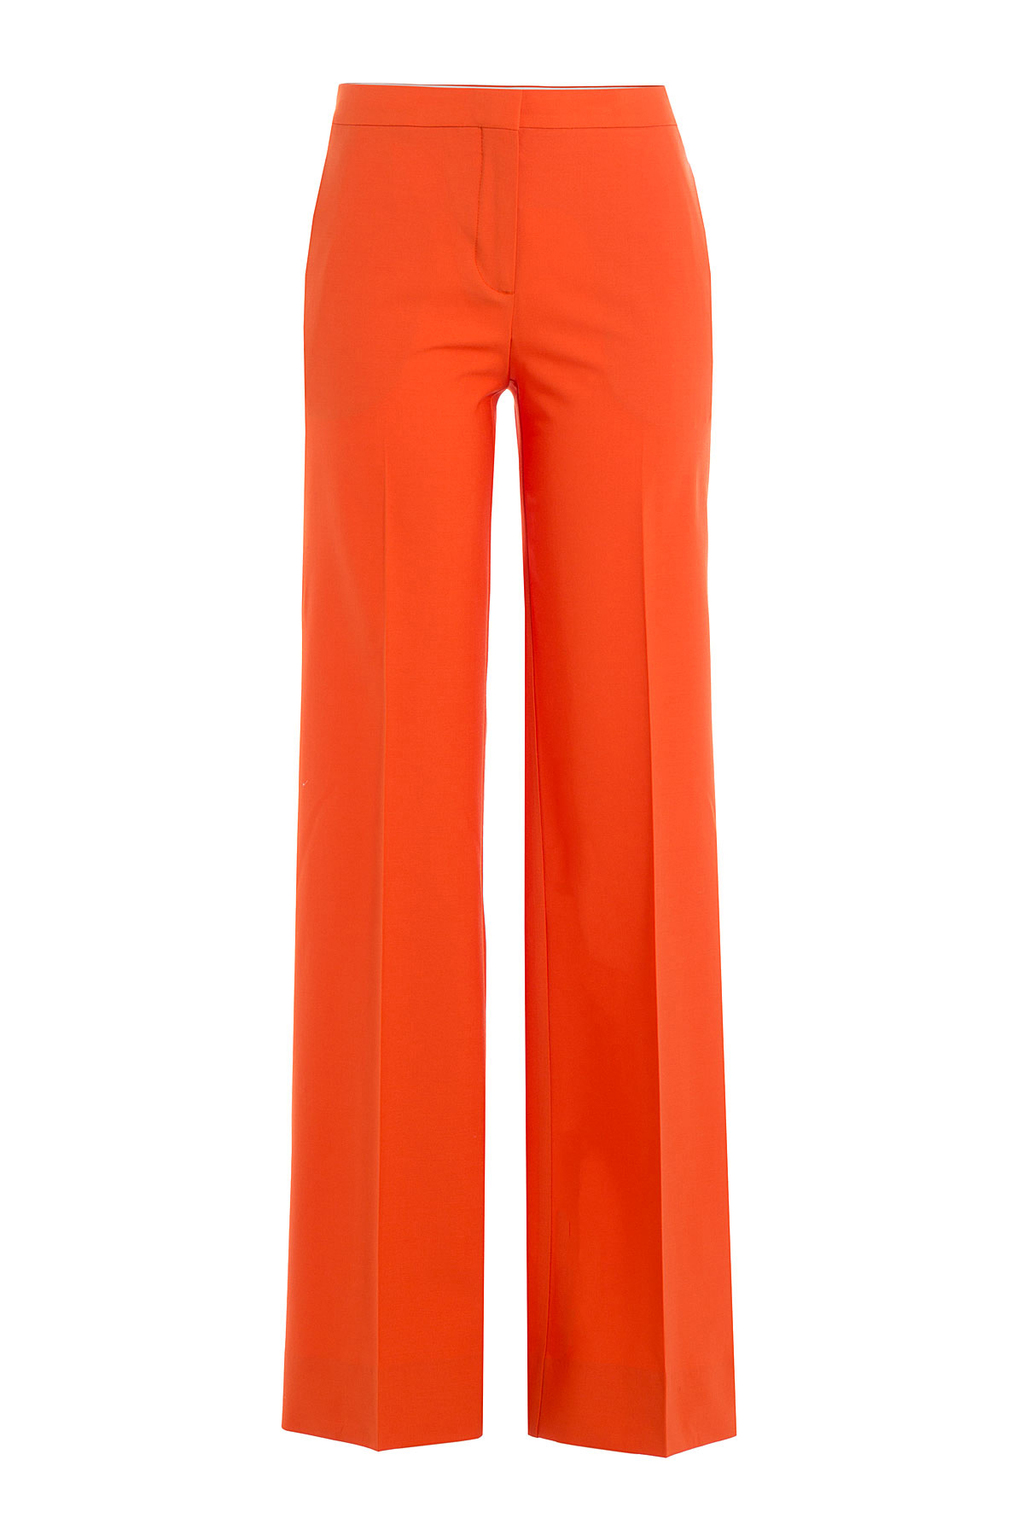 Wide Leg Wool Pants - length: standard; pattern: plain; style: palazzo; waist: mid/regular rise; predominant colour: bright orange; fibres: wool - mix; waist detail: feature waist detail; fit: wide leg; pattern type: fabric; texture group: woven light midweight; occasions: creative work; season: s/s 2016; wardrobe: highlight